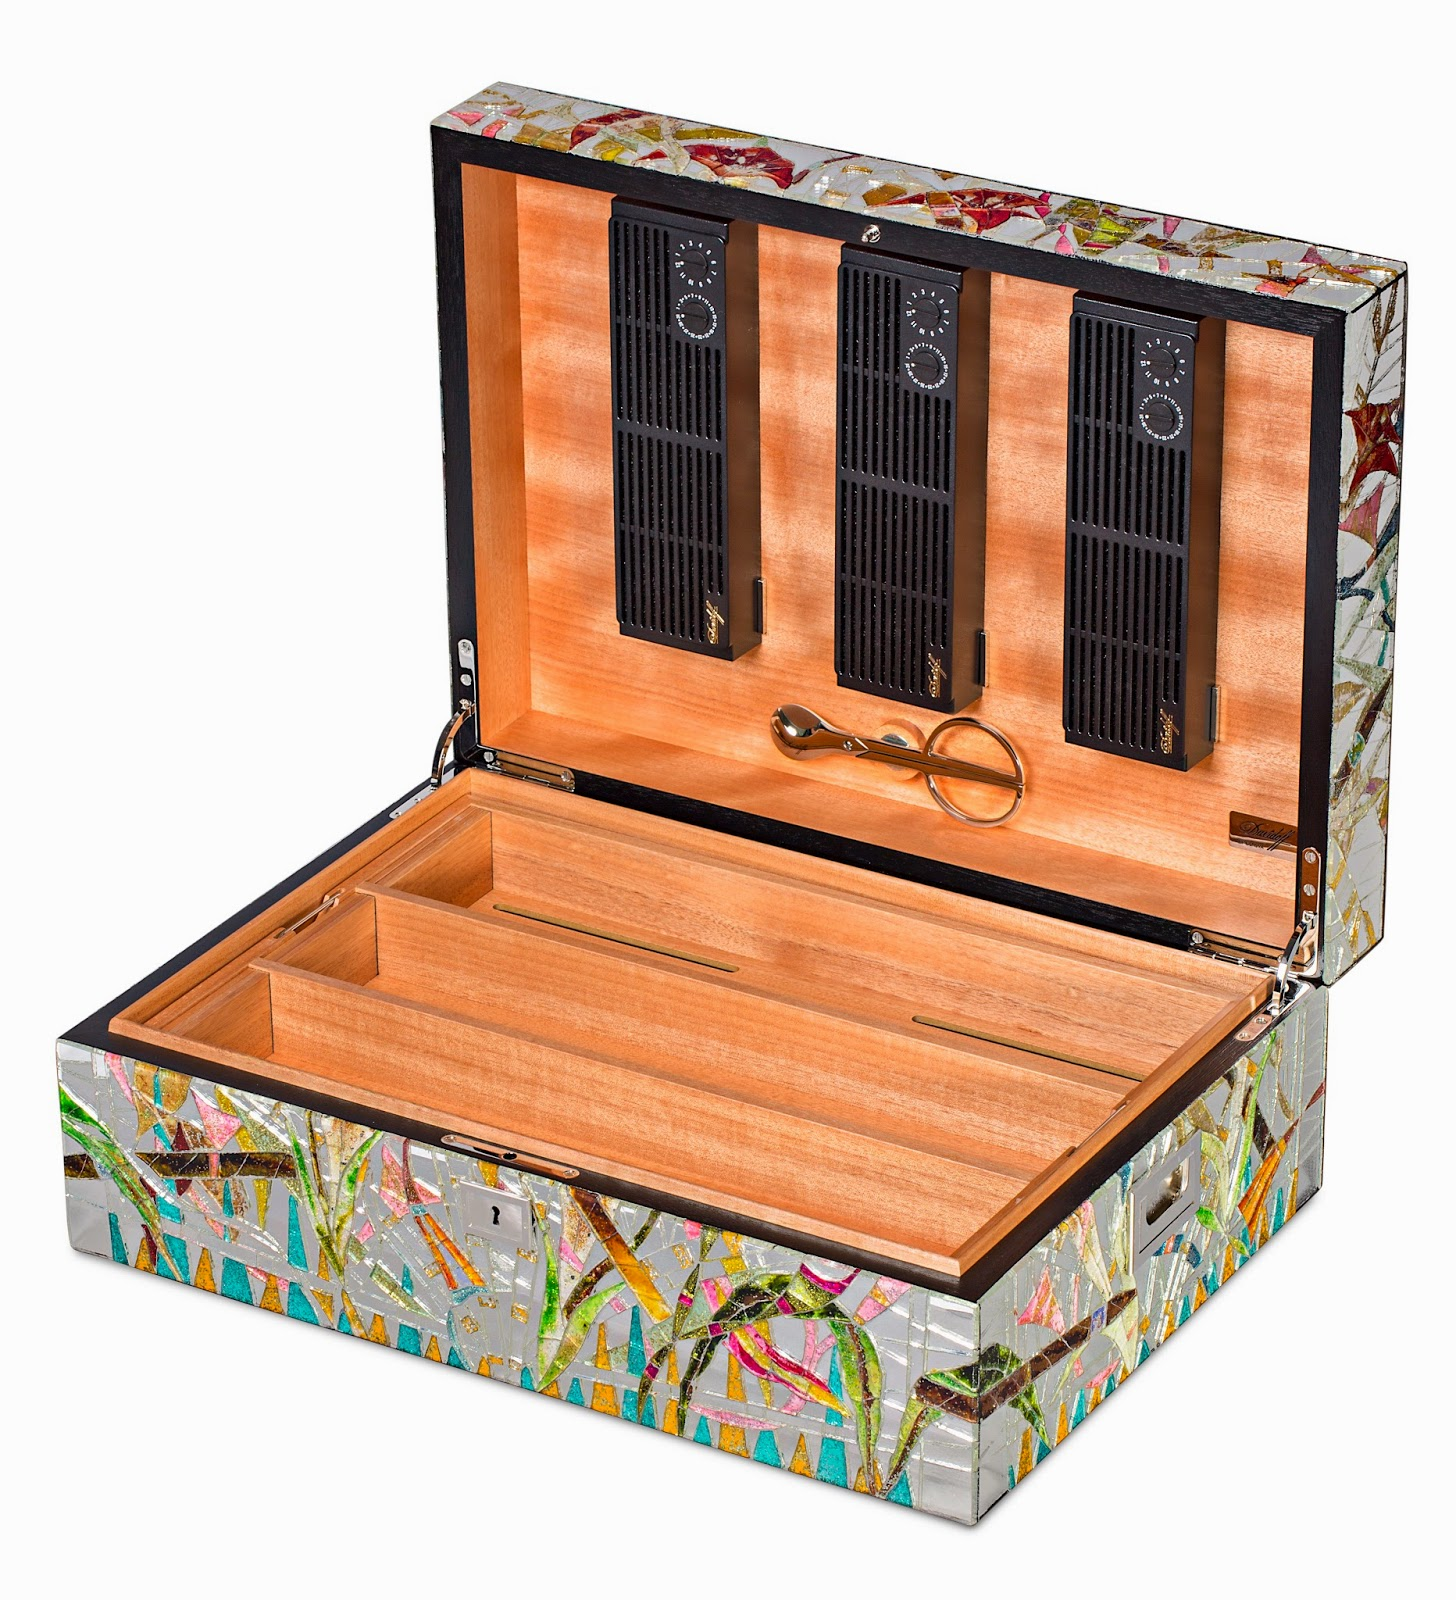 ": Davidoff To Unveil ""The Miami Collection"" Humidors at Art Basel #AE541D"